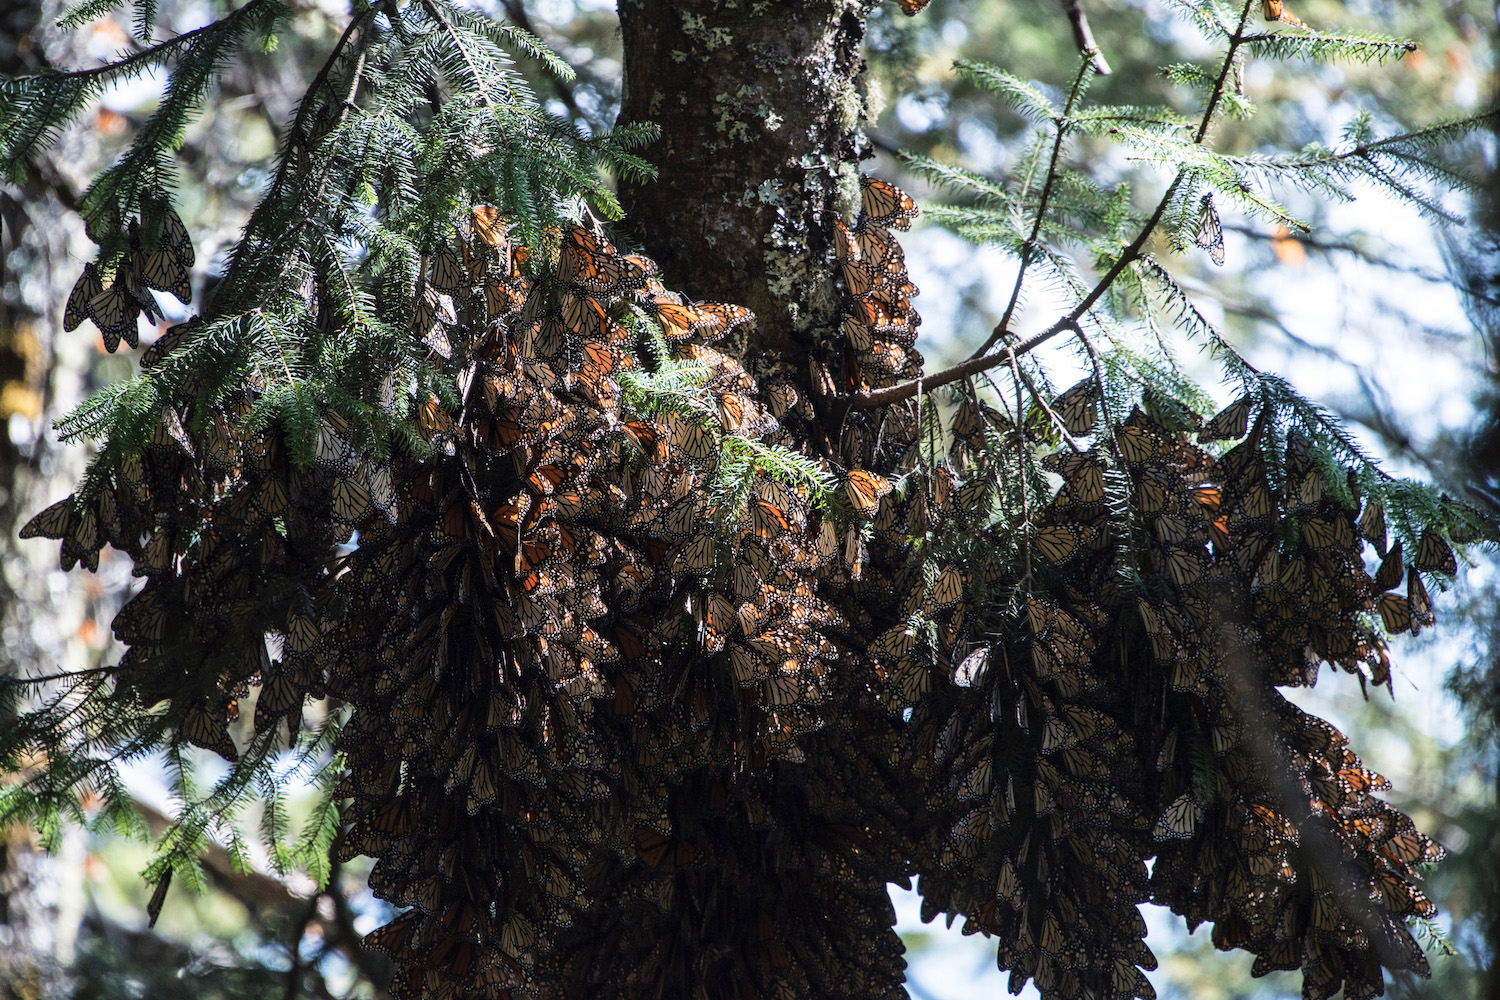 A monarch butterfly colony at Mexico's Cerro Pelon Biosphere